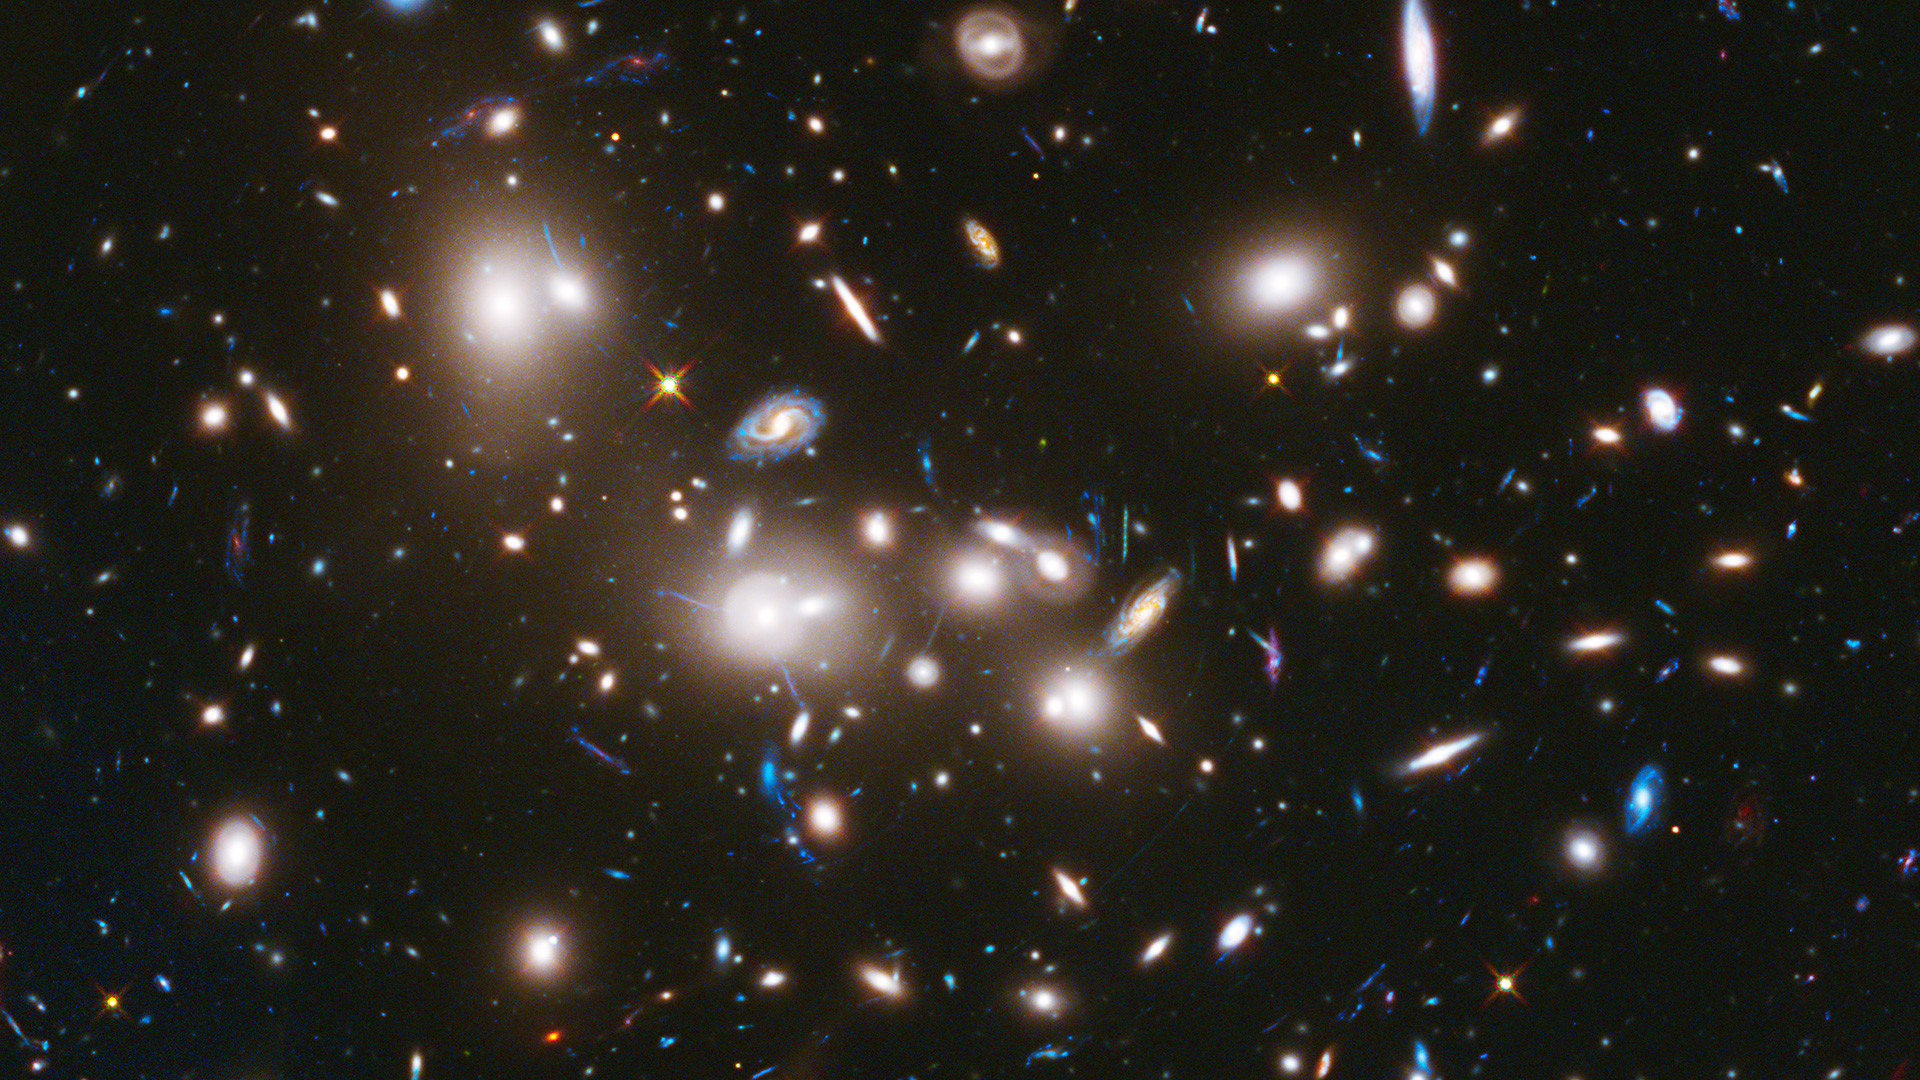 hubble images super high resolution – Google Search